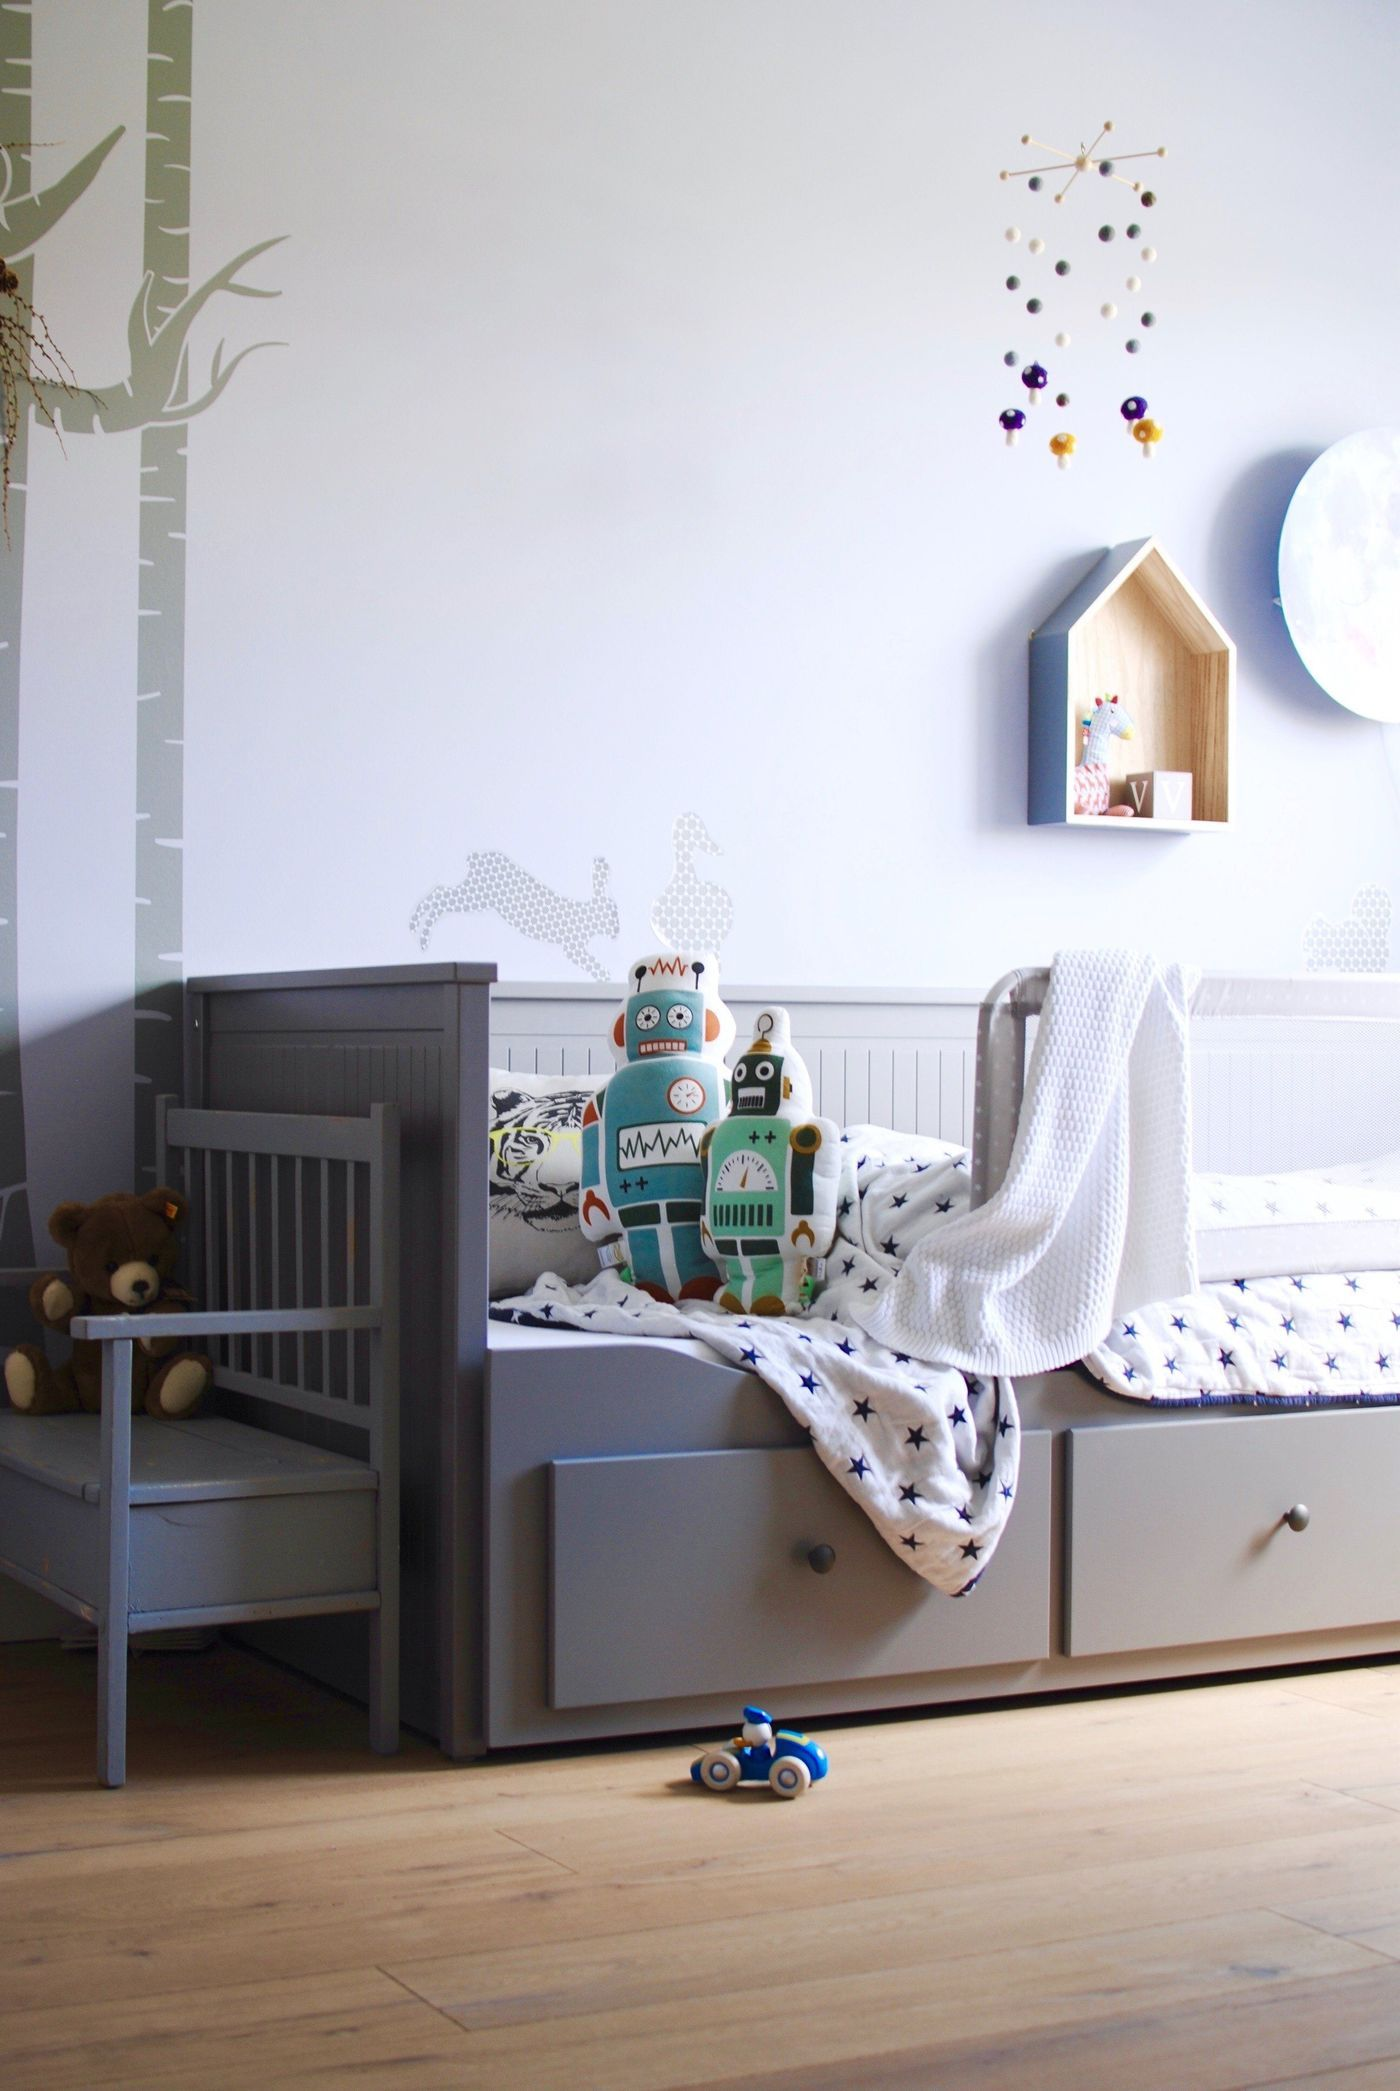 die sch nsten ideen f r dein kinderzimmer seite 9. Black Bedroom Furniture Sets. Home Design Ideas